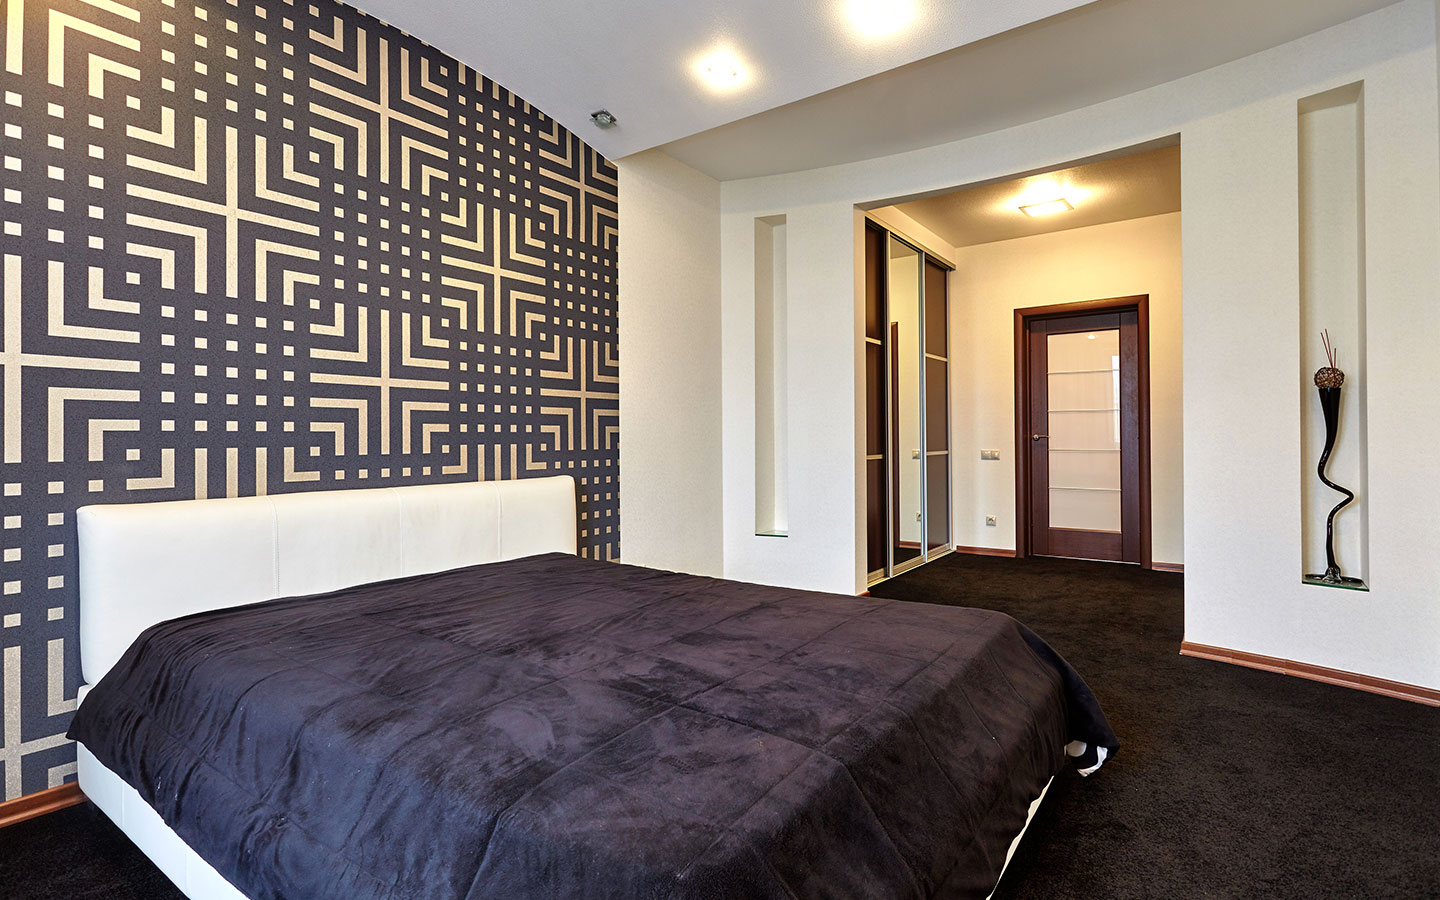 geometric wallpaper pattern for an accent wall